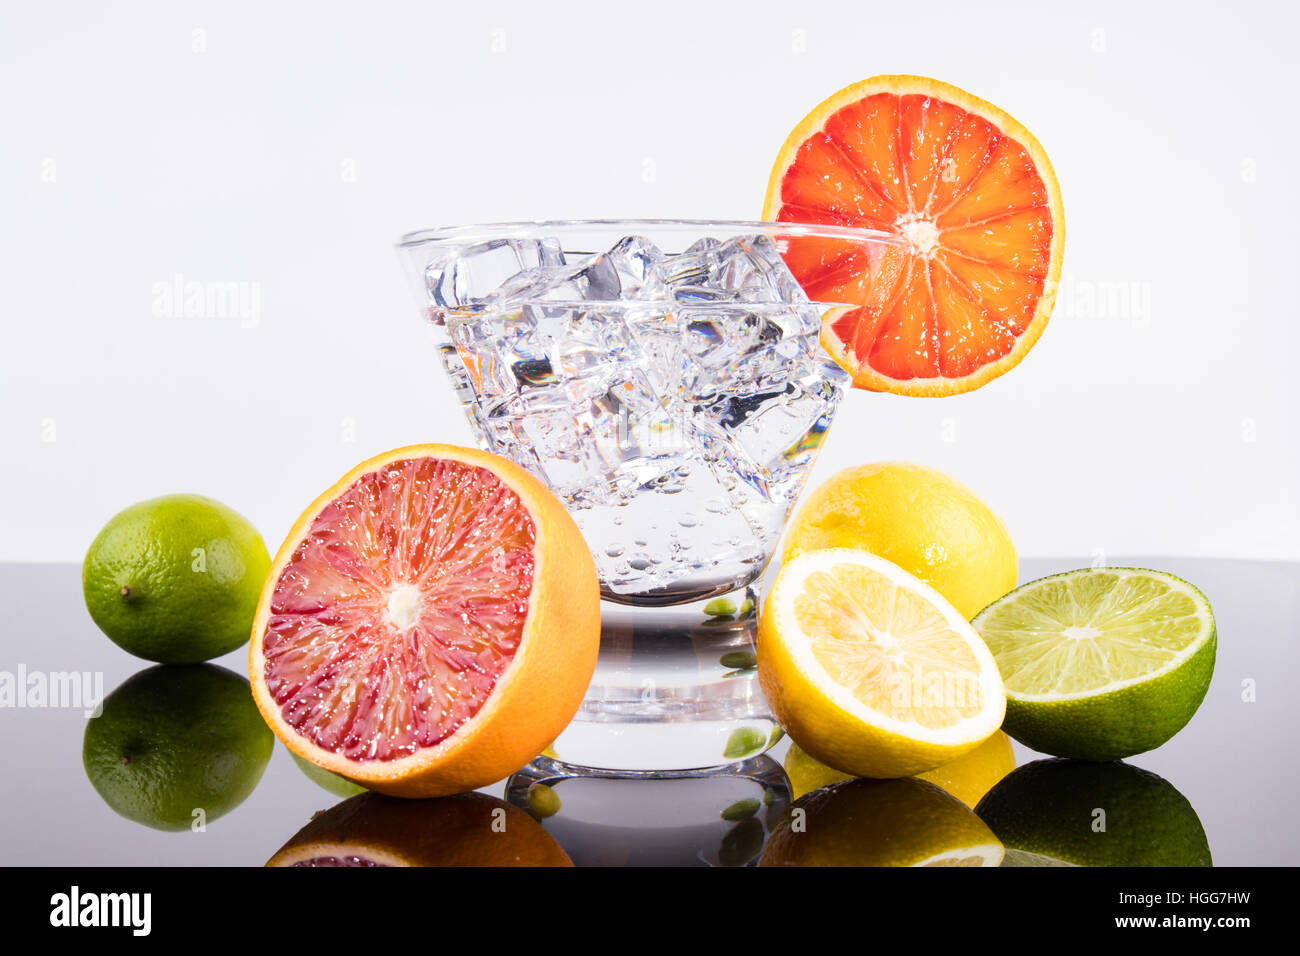 Sparkling beverage in a martini glass with colorful citrus - Stock Image